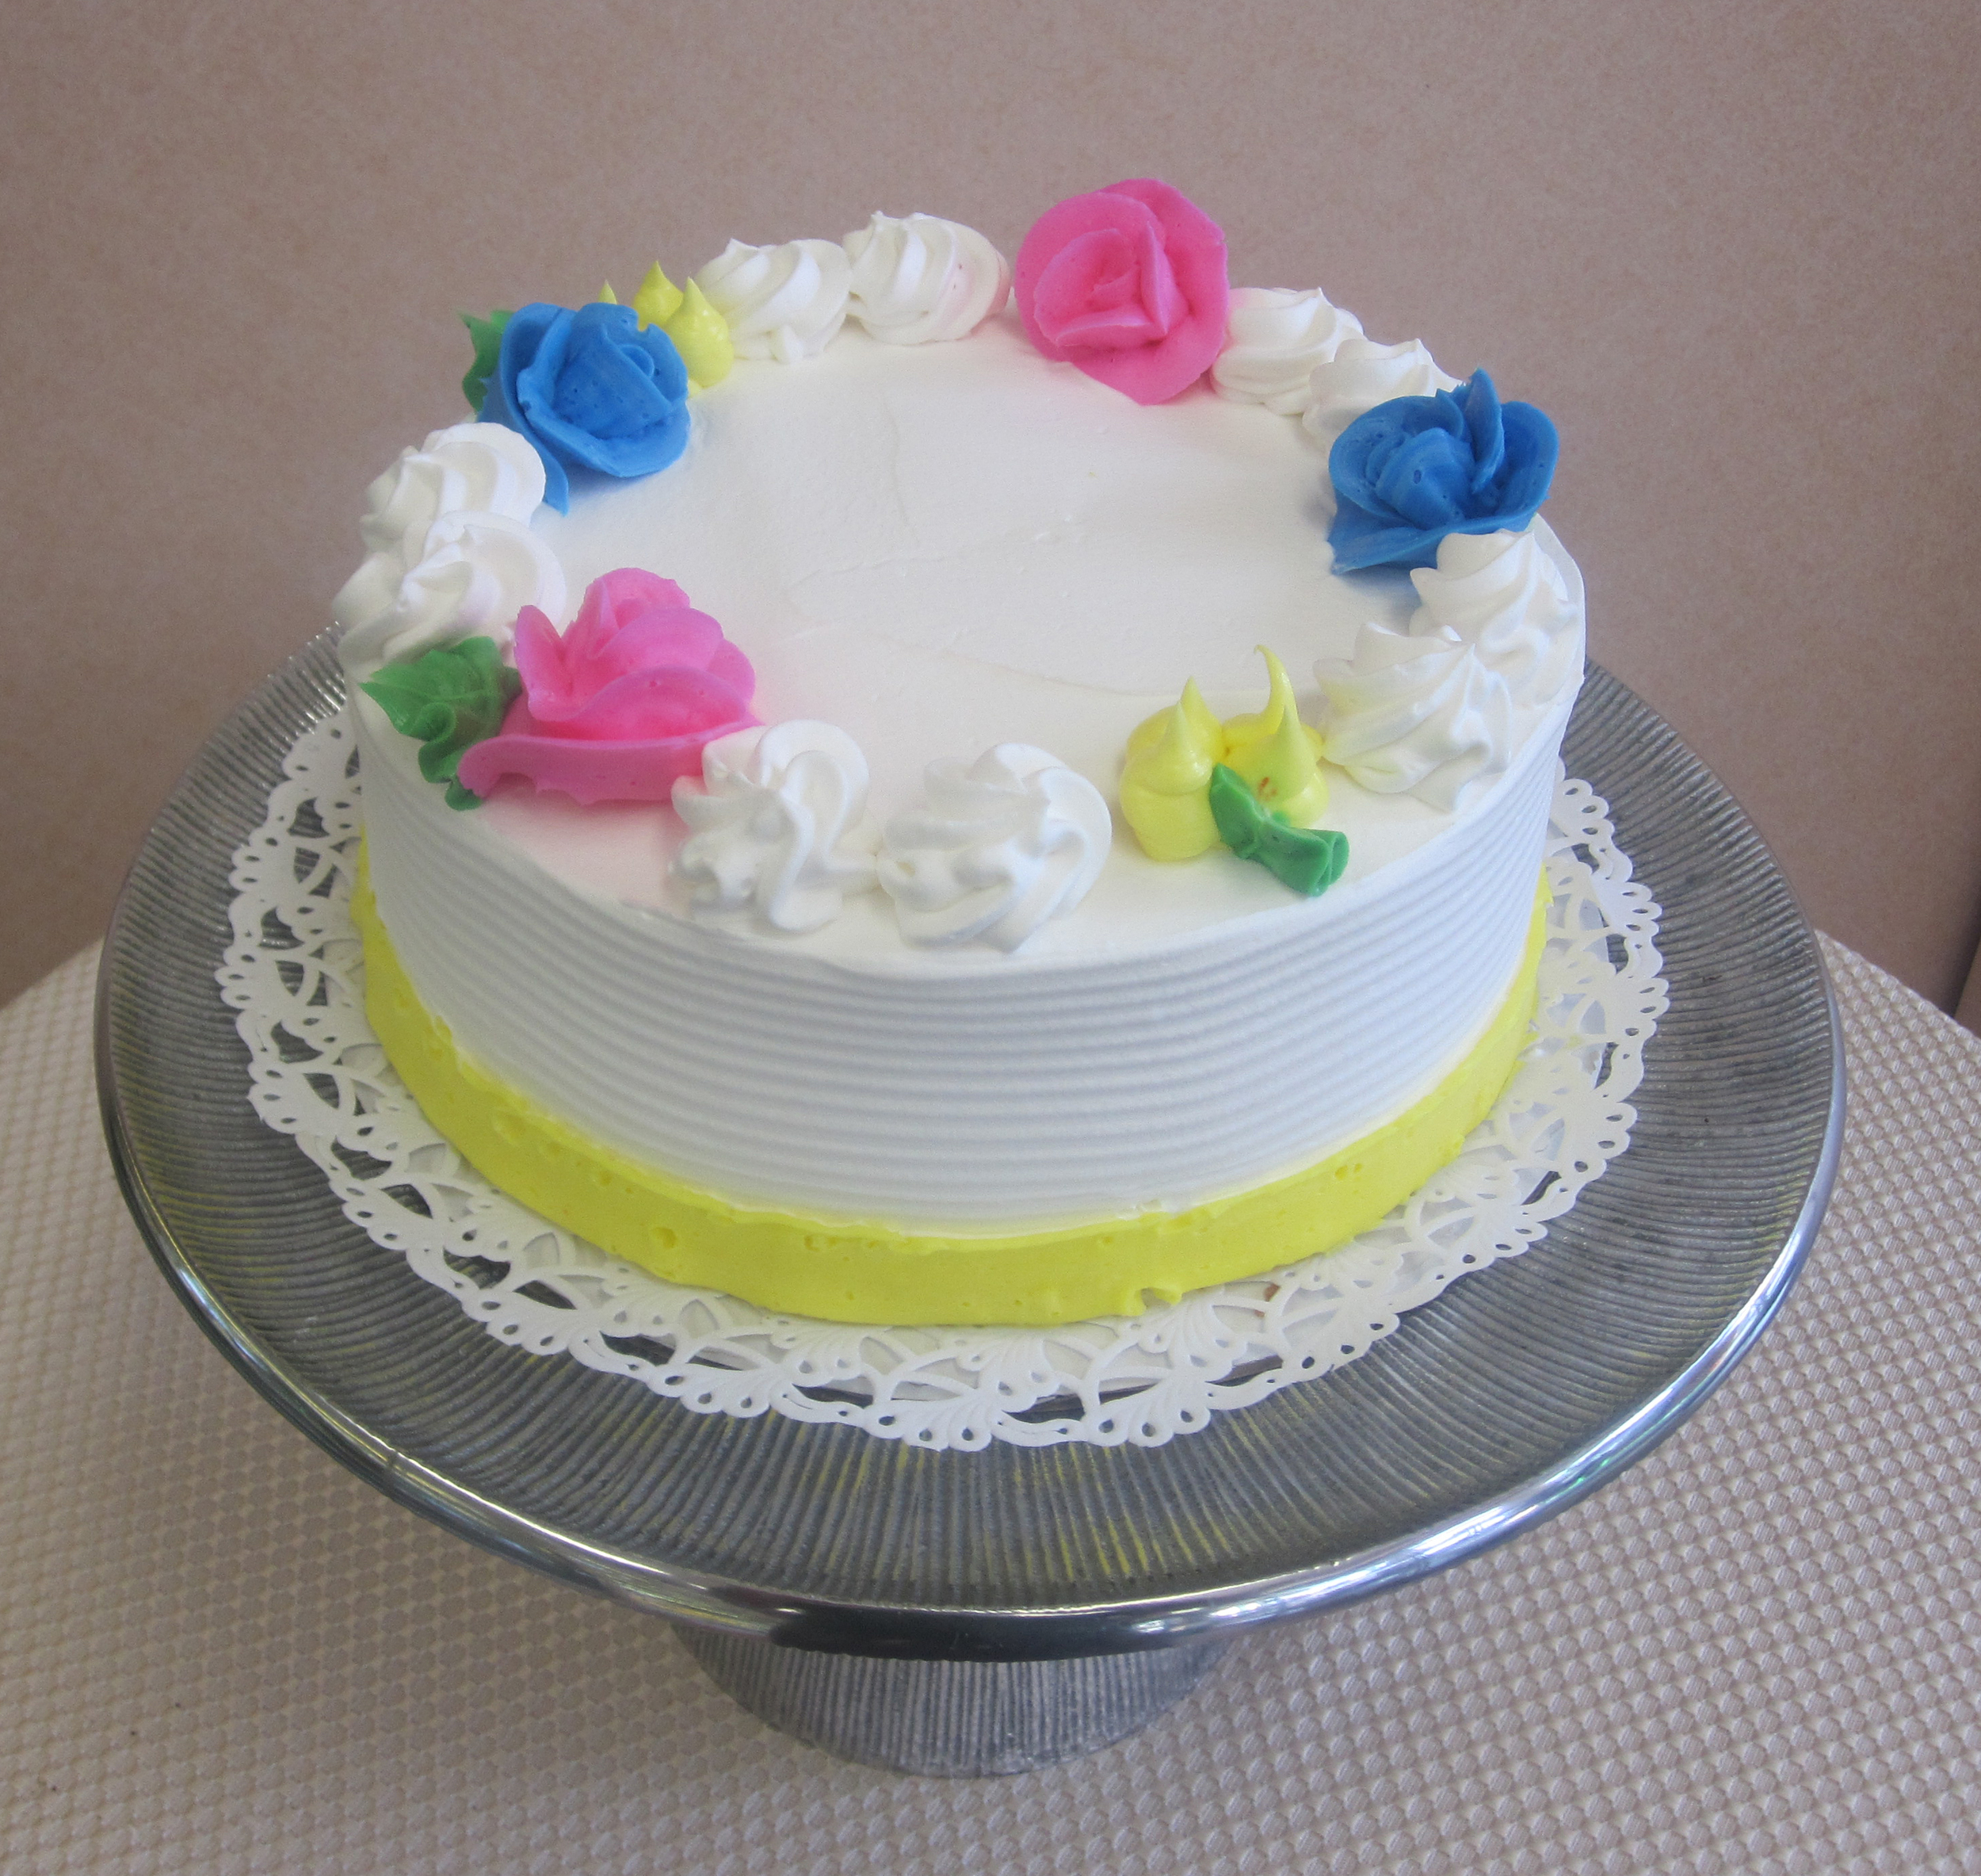 Traditional Occasion Cake